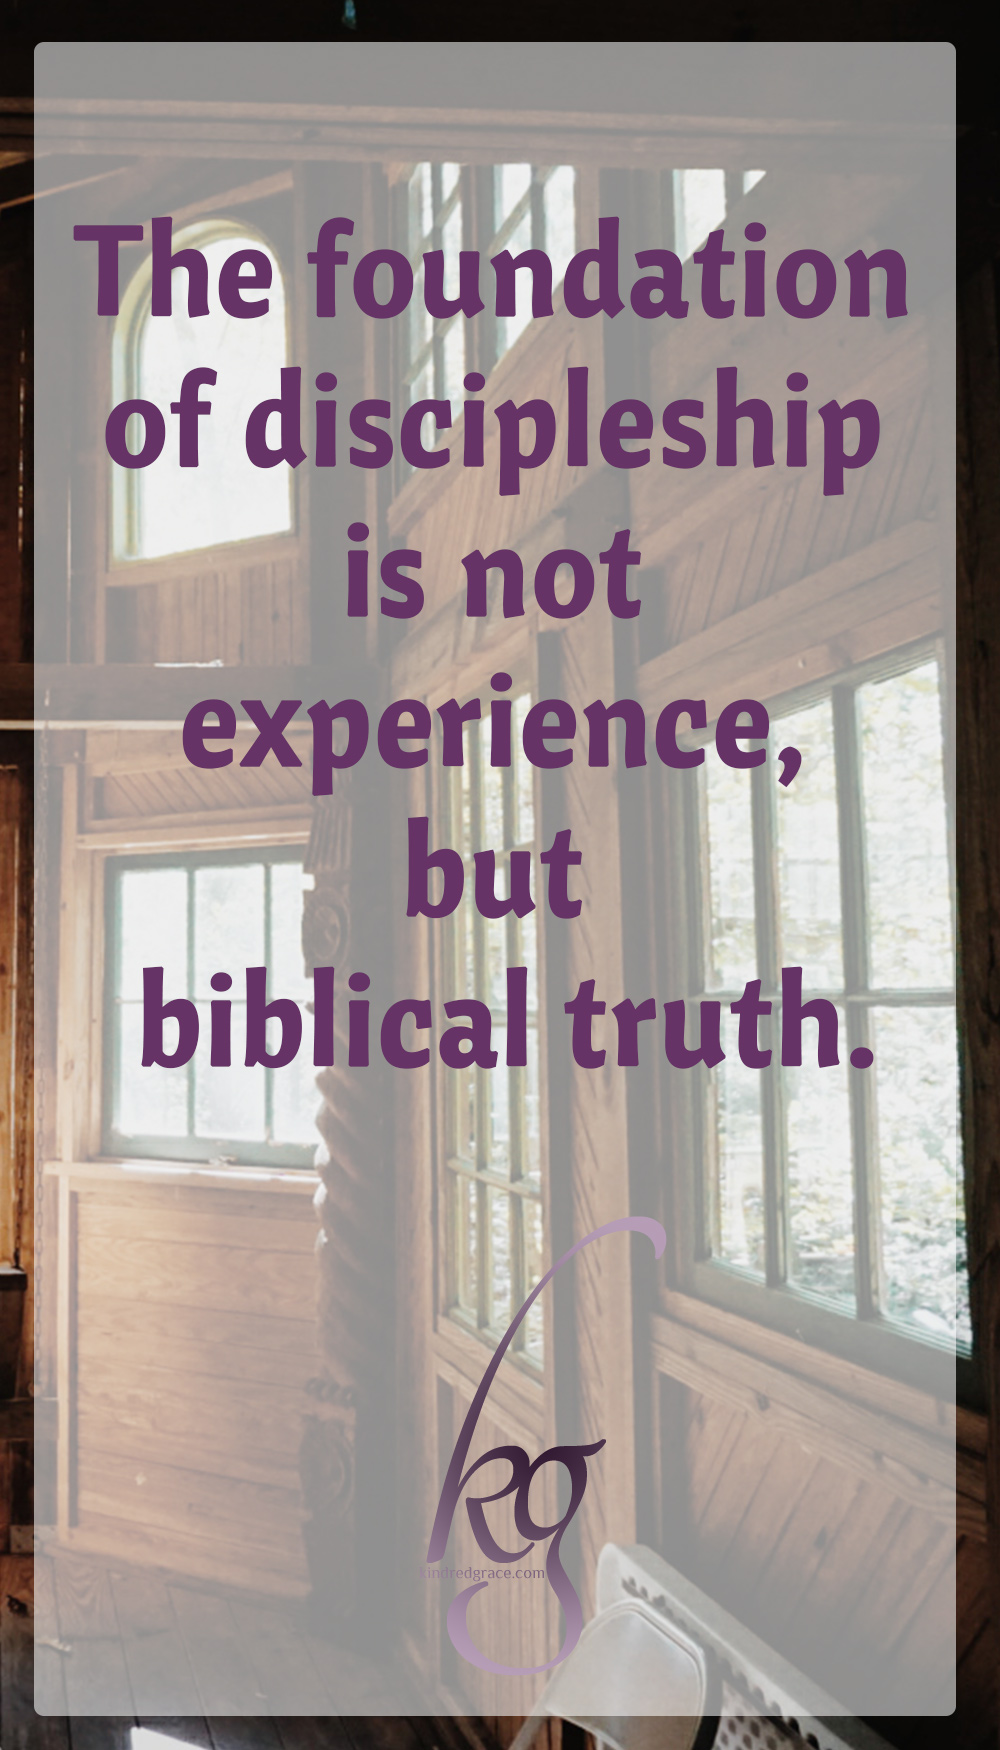 We err when we try to use our experiences as the foundation of our mentoring. The foundation of discipleship and mentoring is not experience, but biblical truth.